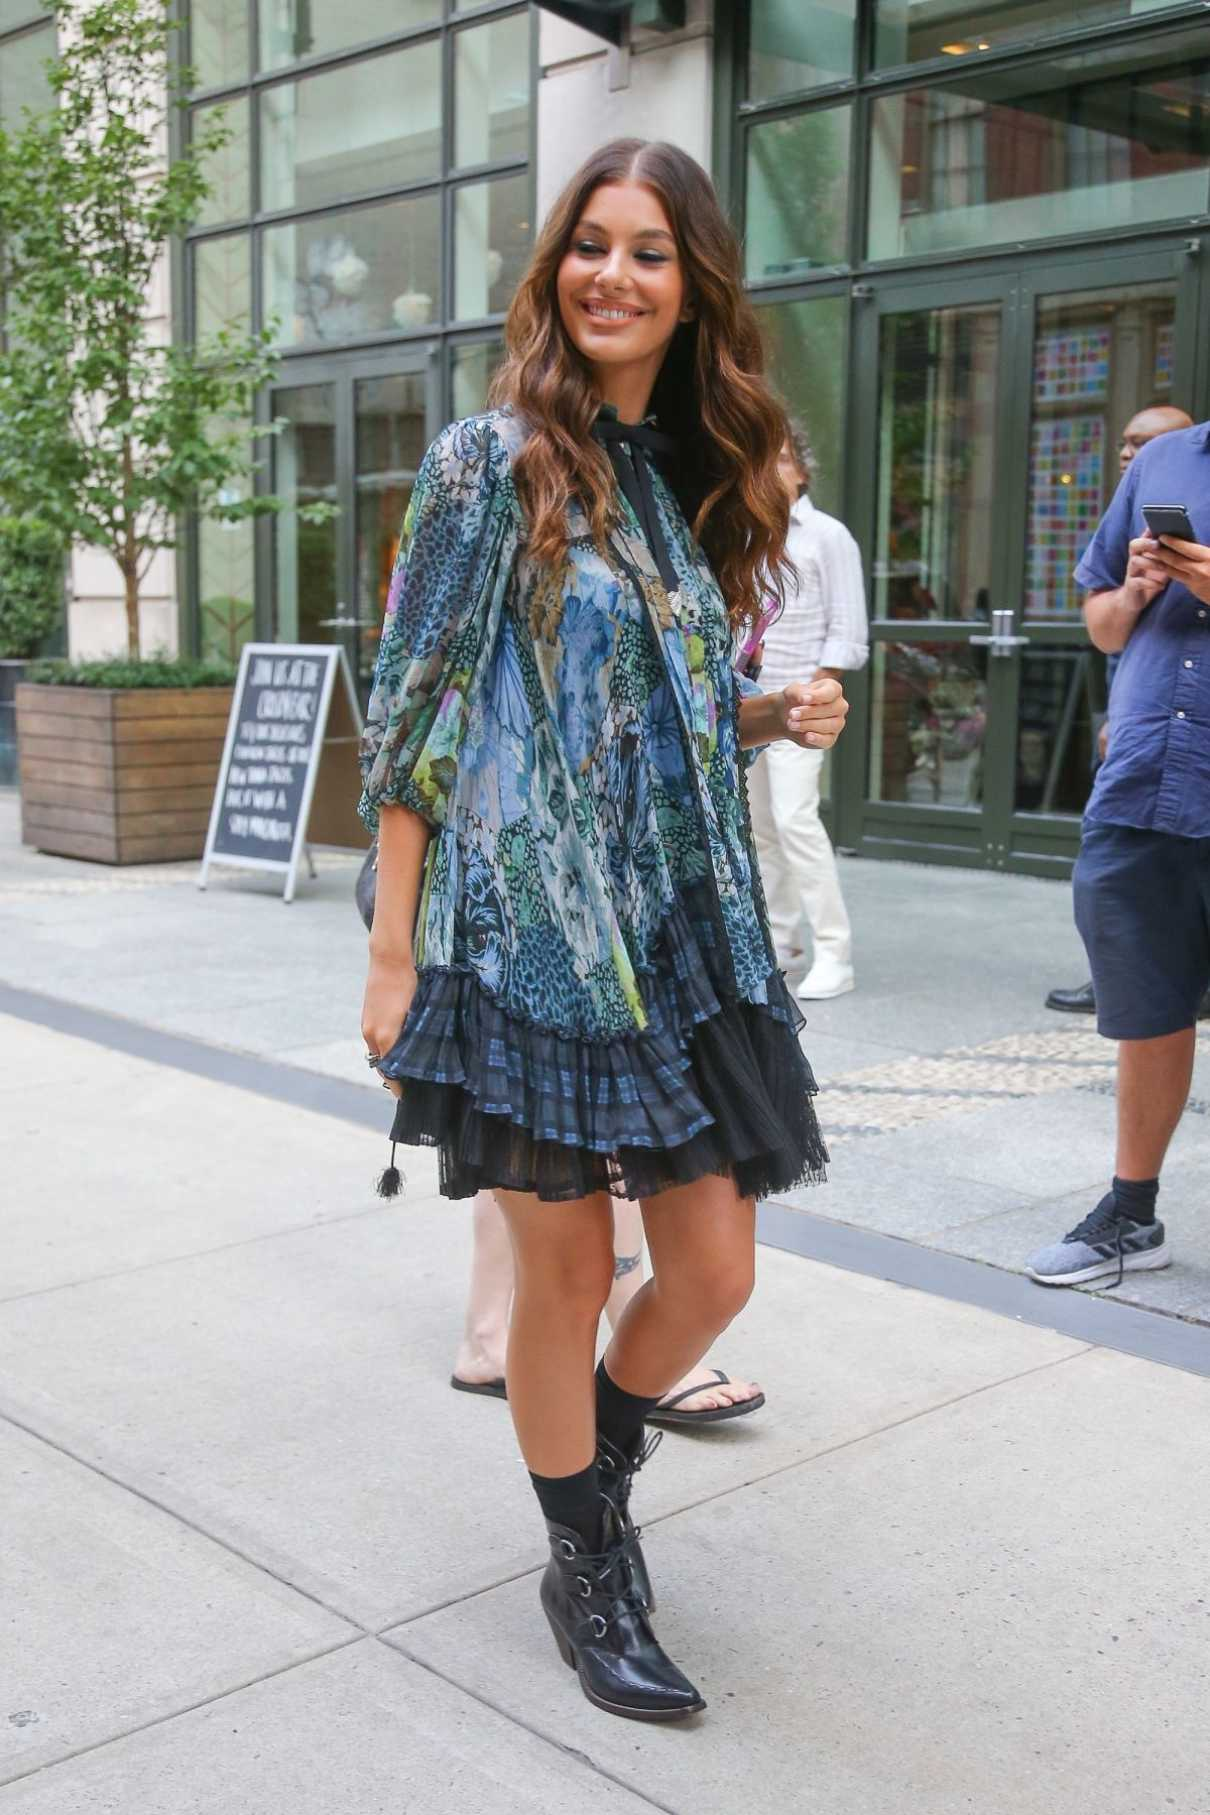 Camila Morrone in a Short Floral Dress